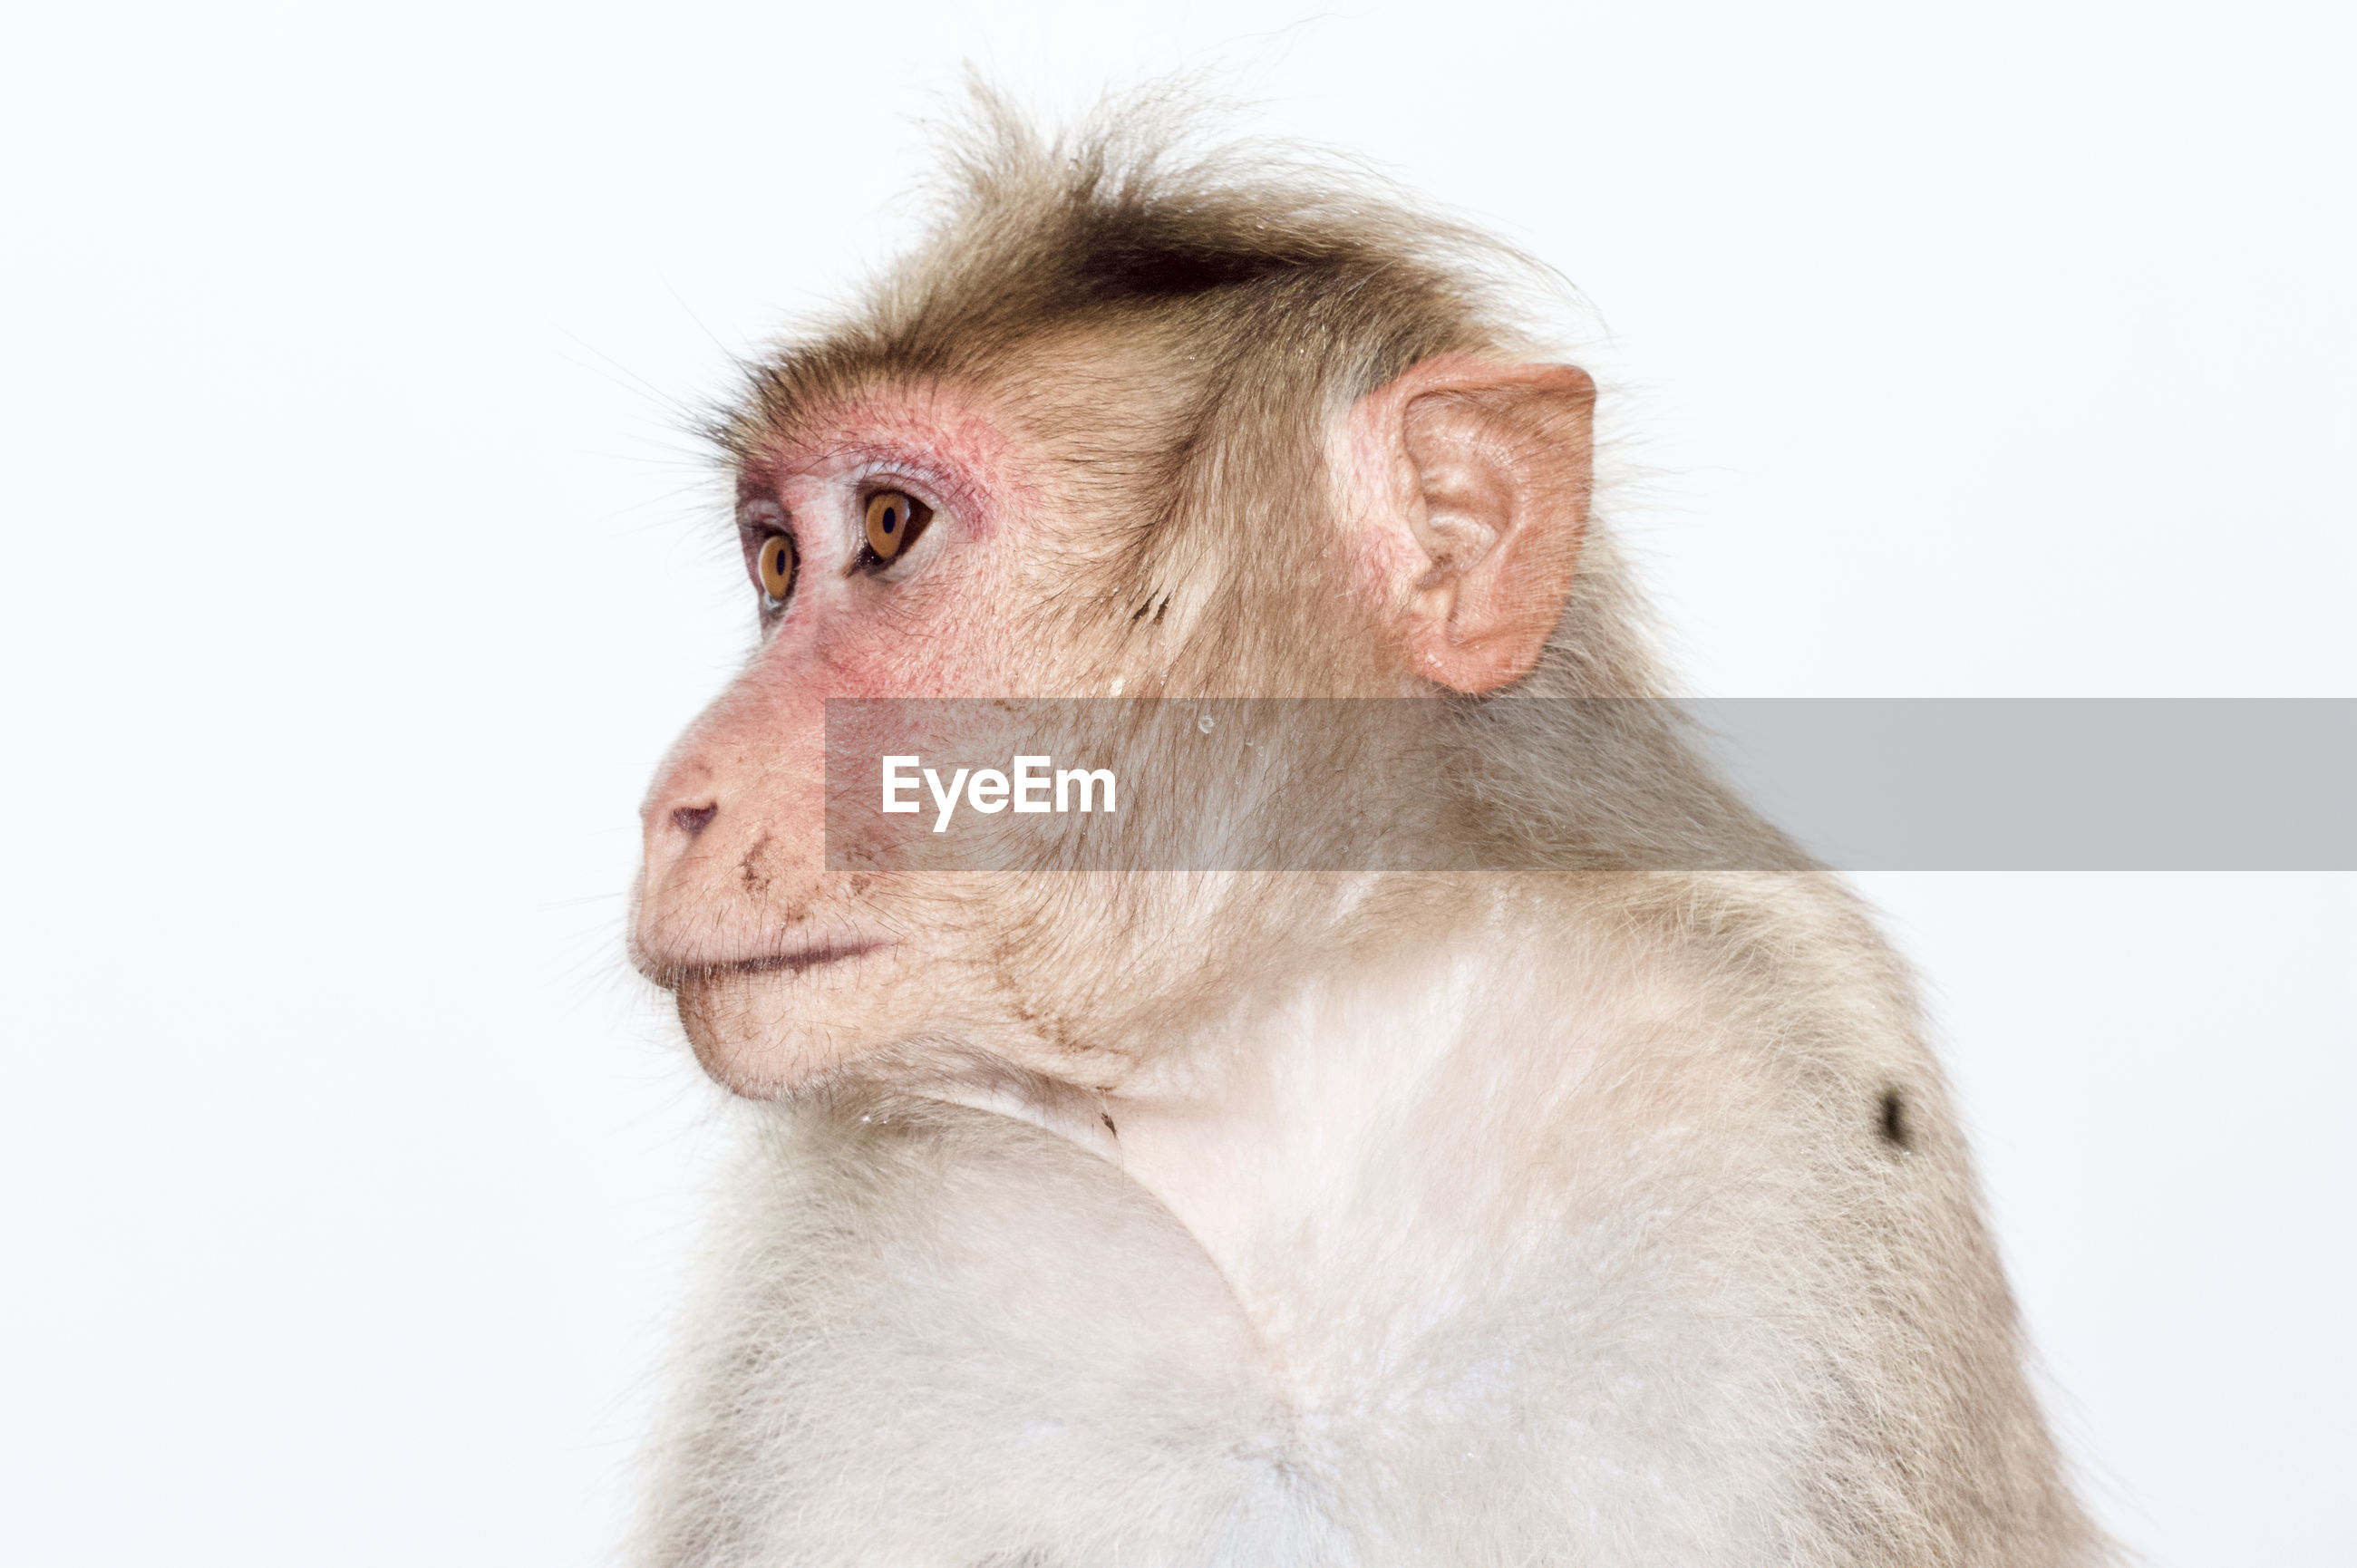 Close-up portrait of a monkey over white background